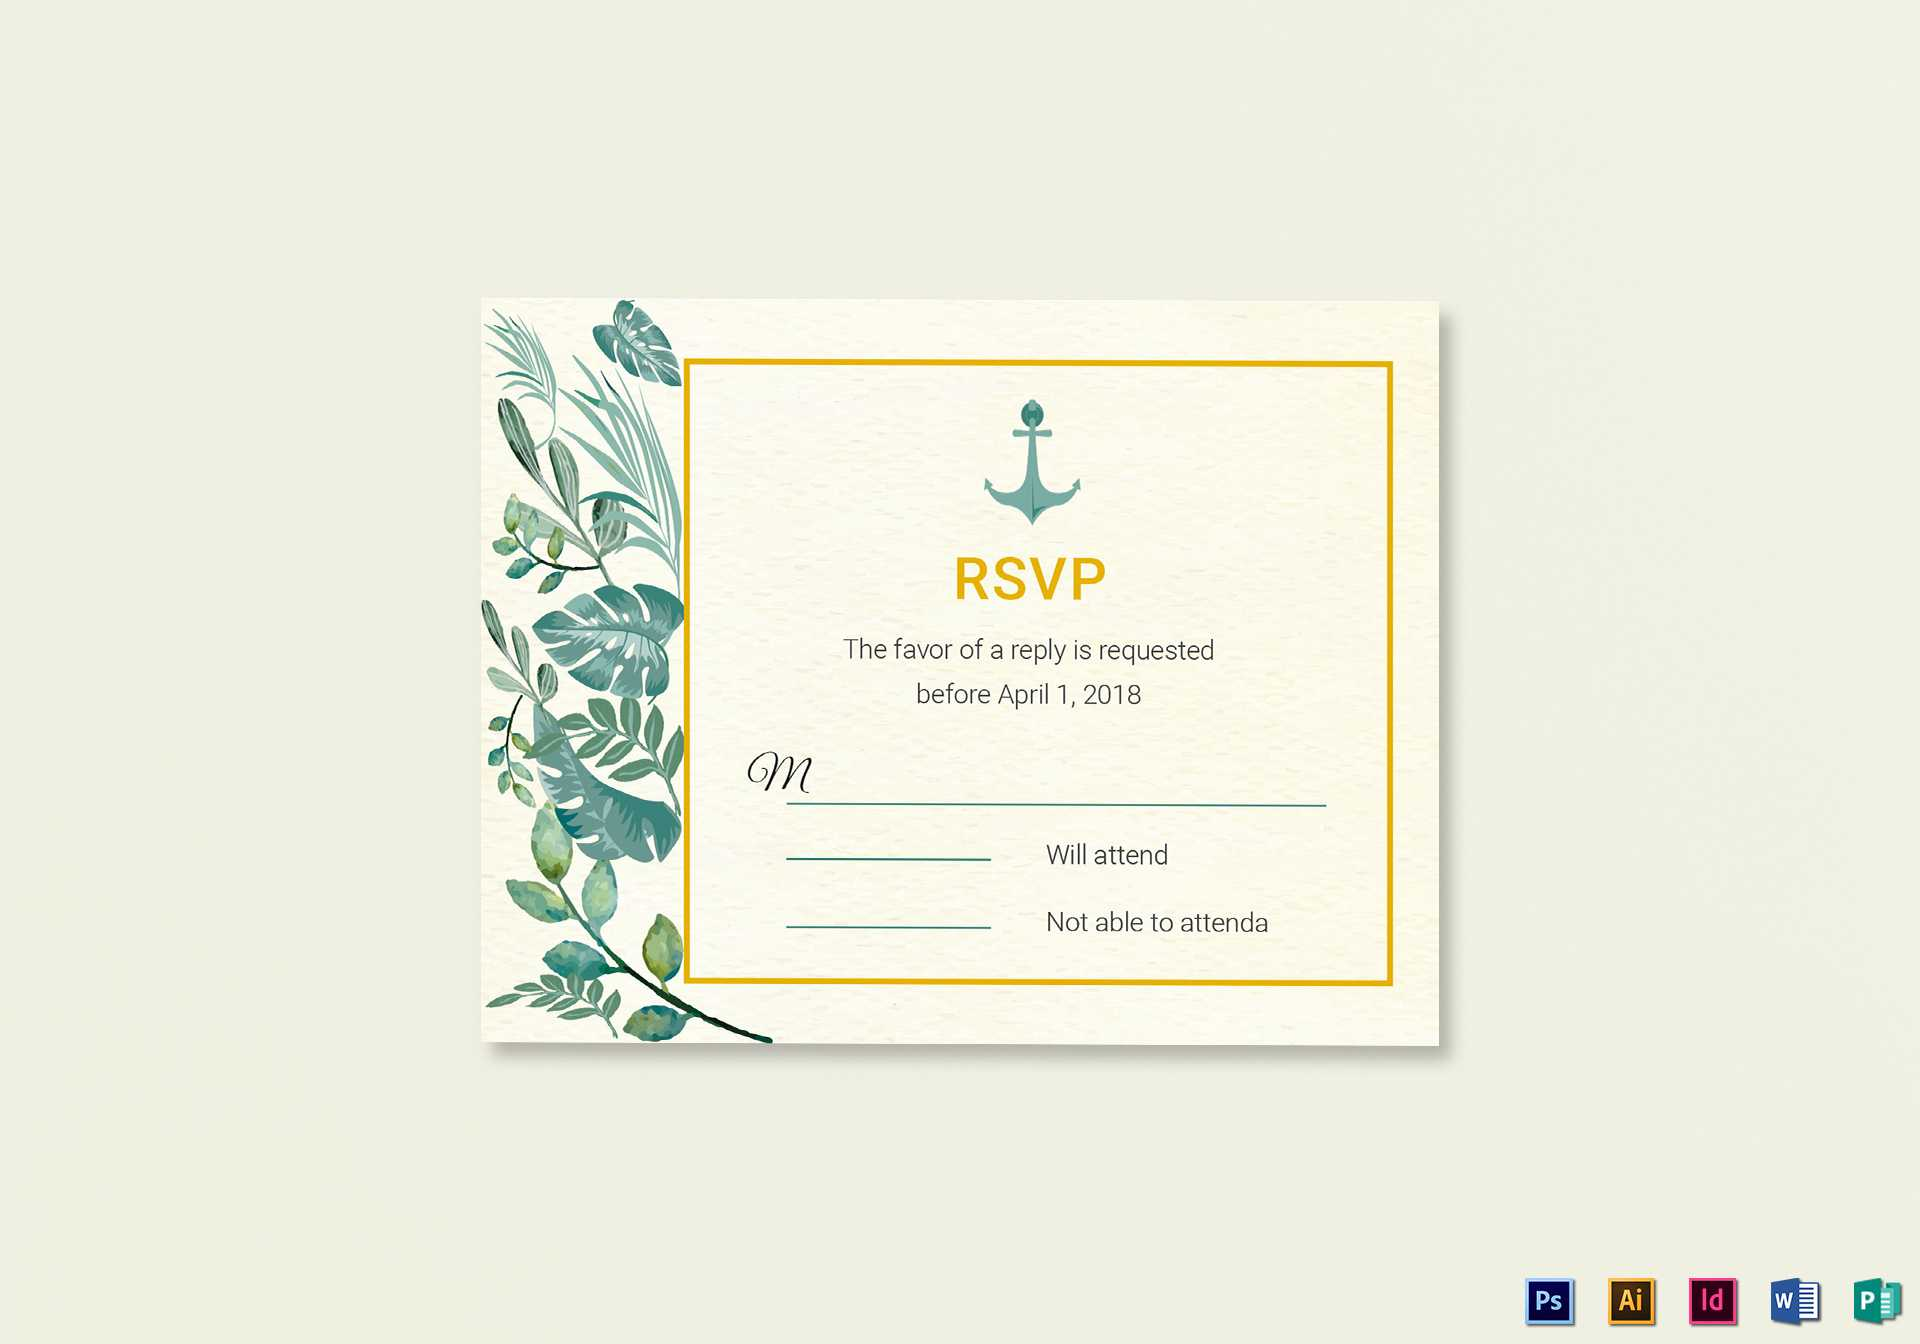 005 Rsvp Wedding Cards Templates Template Incredible Ideas For Free Printable Wedding Rsvp Card Templates